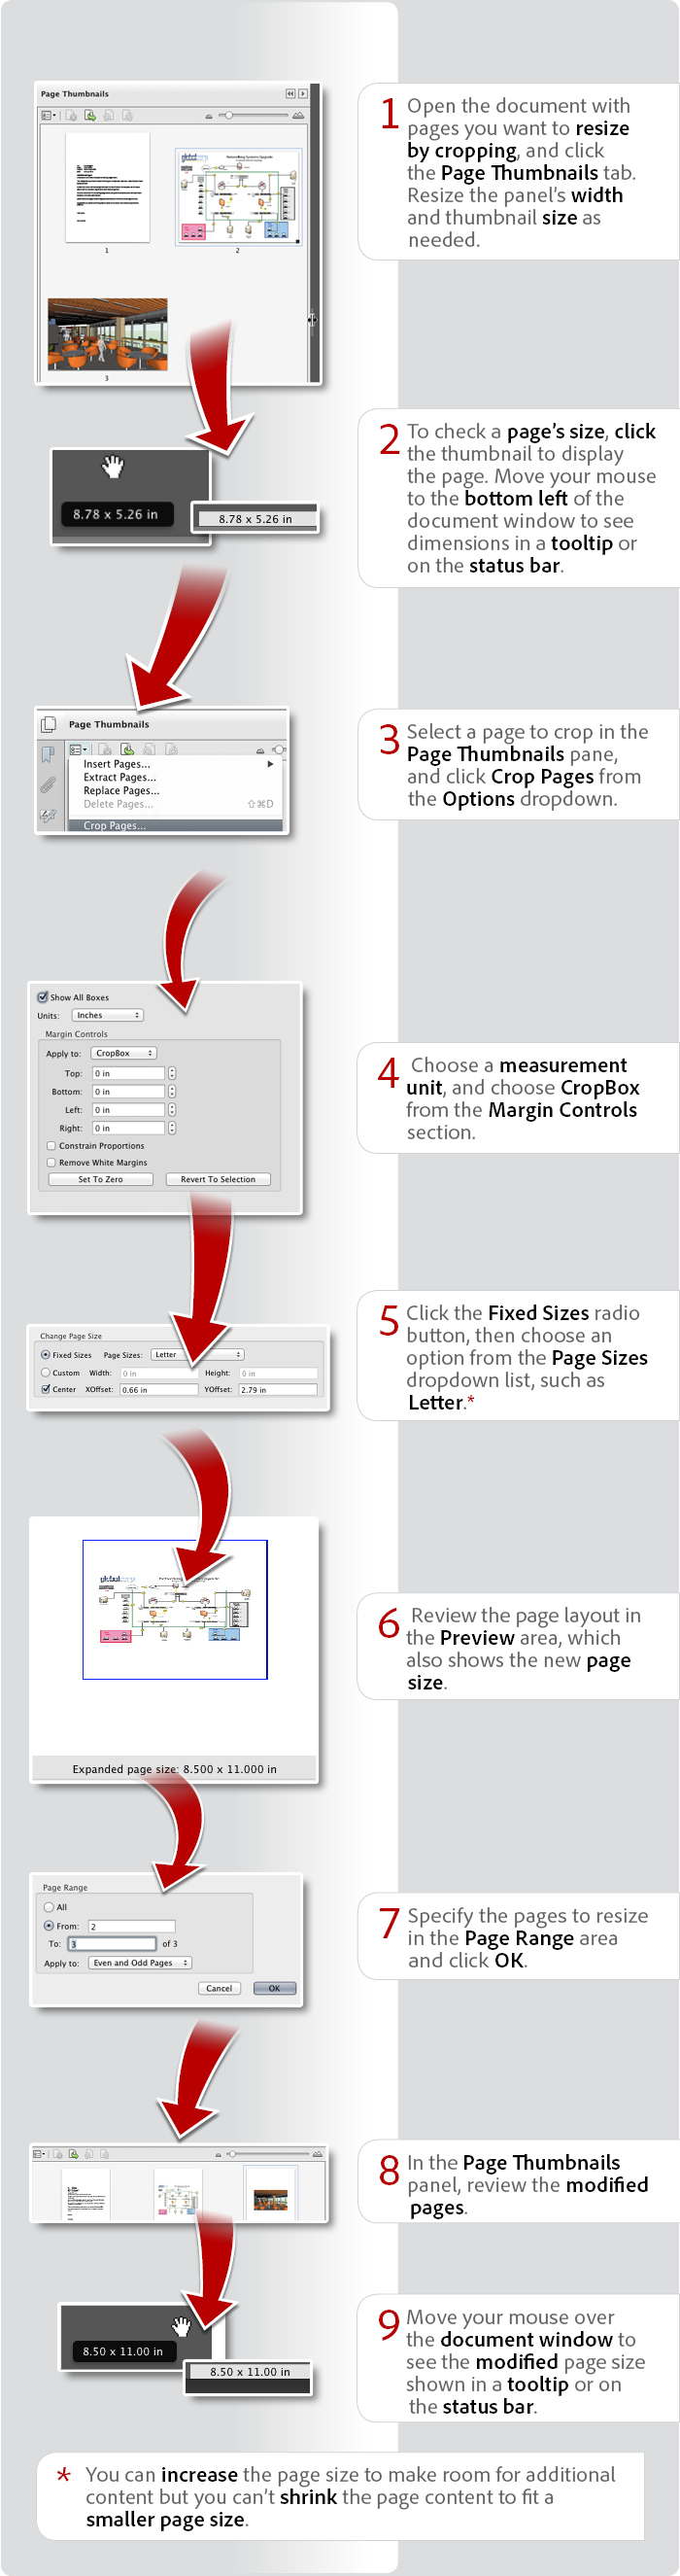 How to edit PDF, edit a PDF, edit PDF files, resize PDF pages